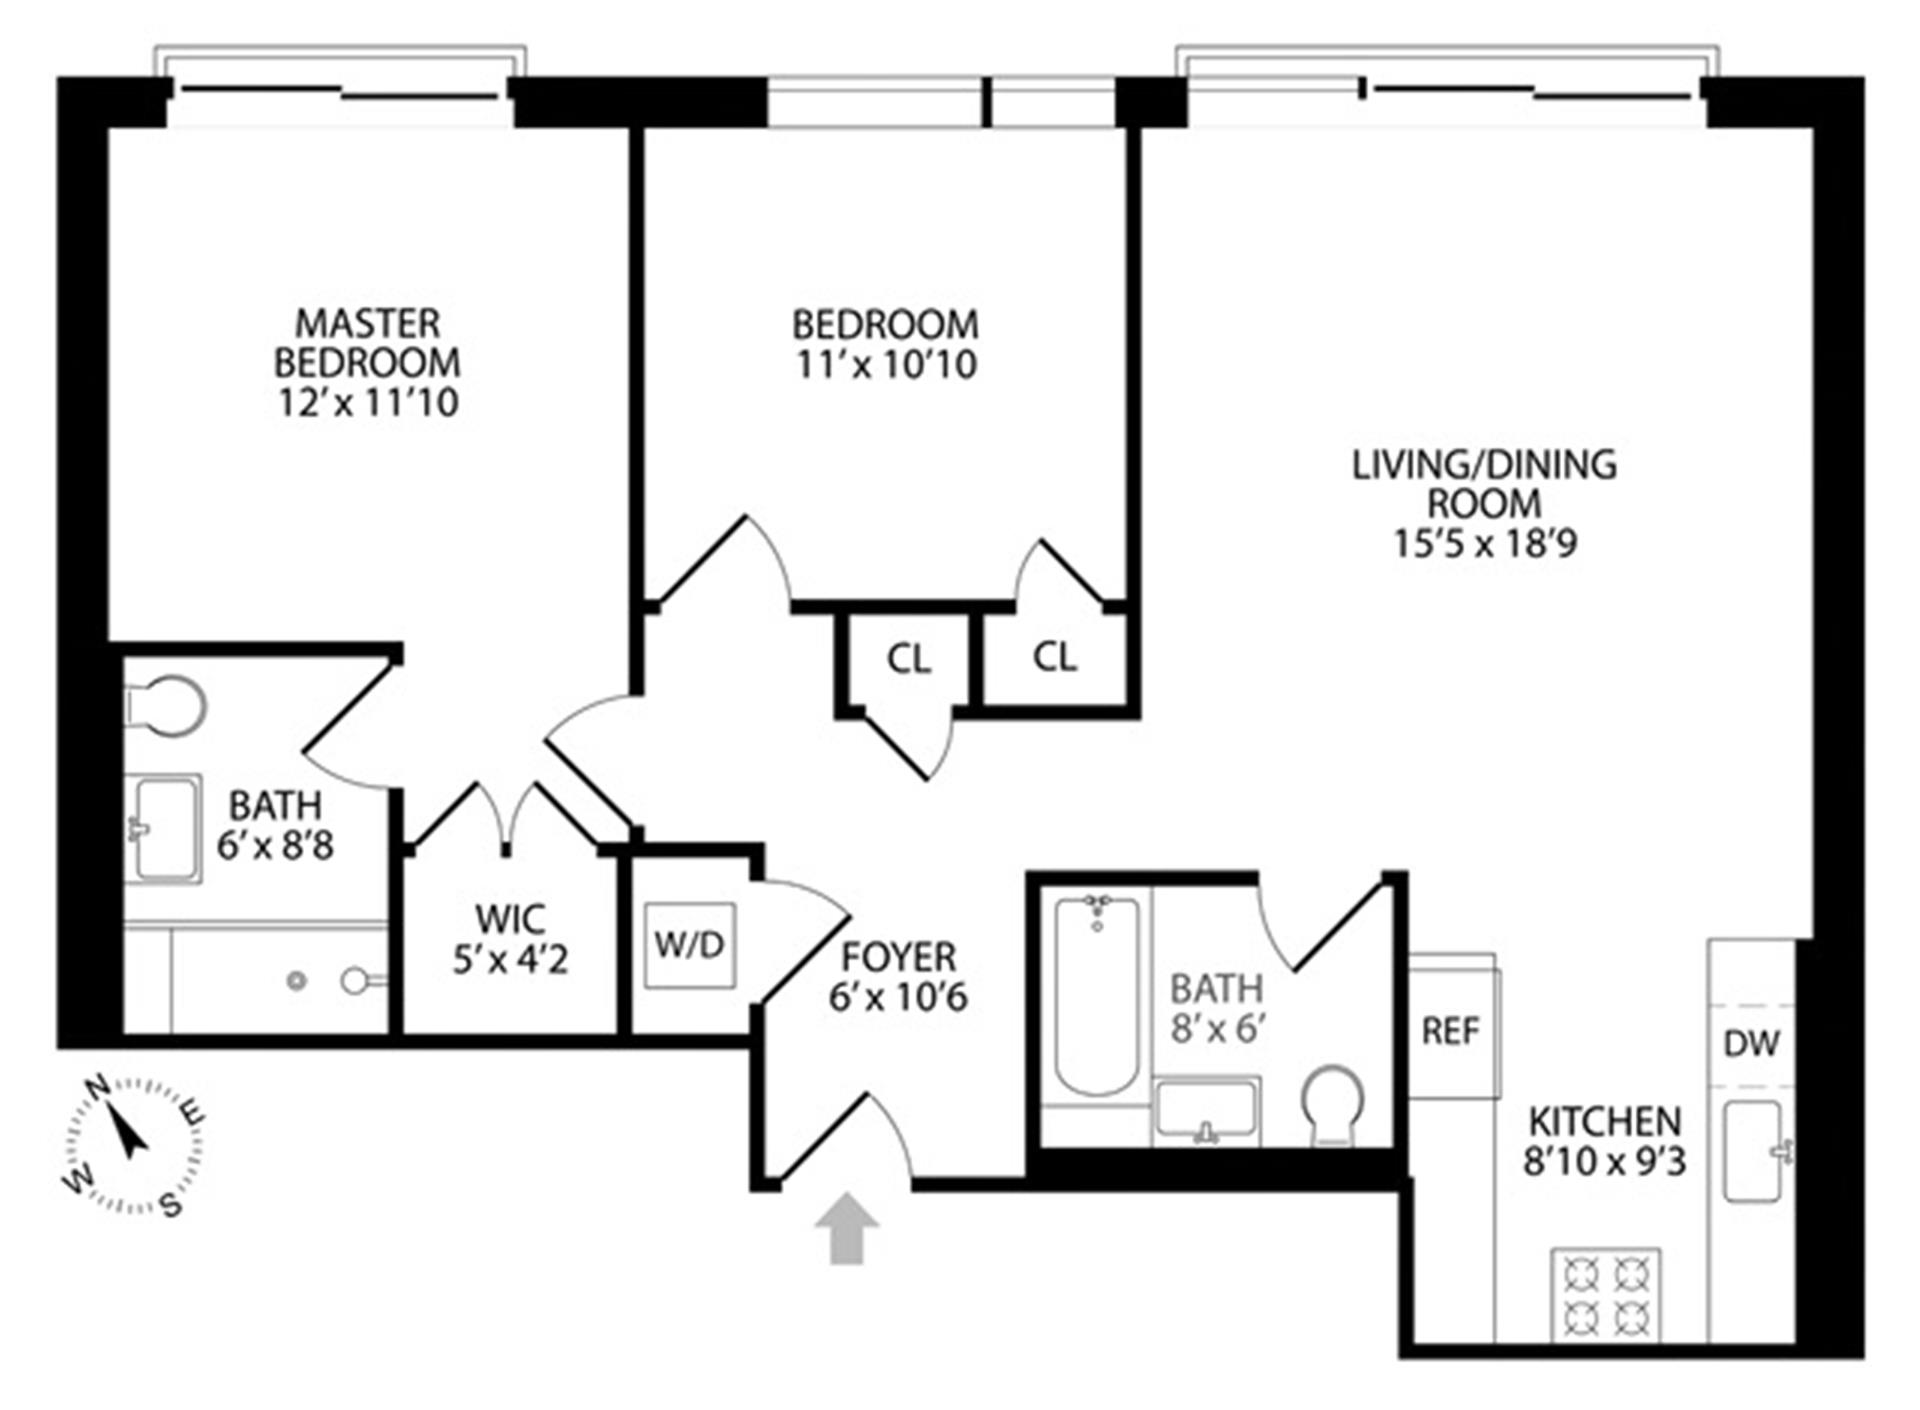 Floor plan of 267 Evergreen Avenue, 2C - Bushwick, New York